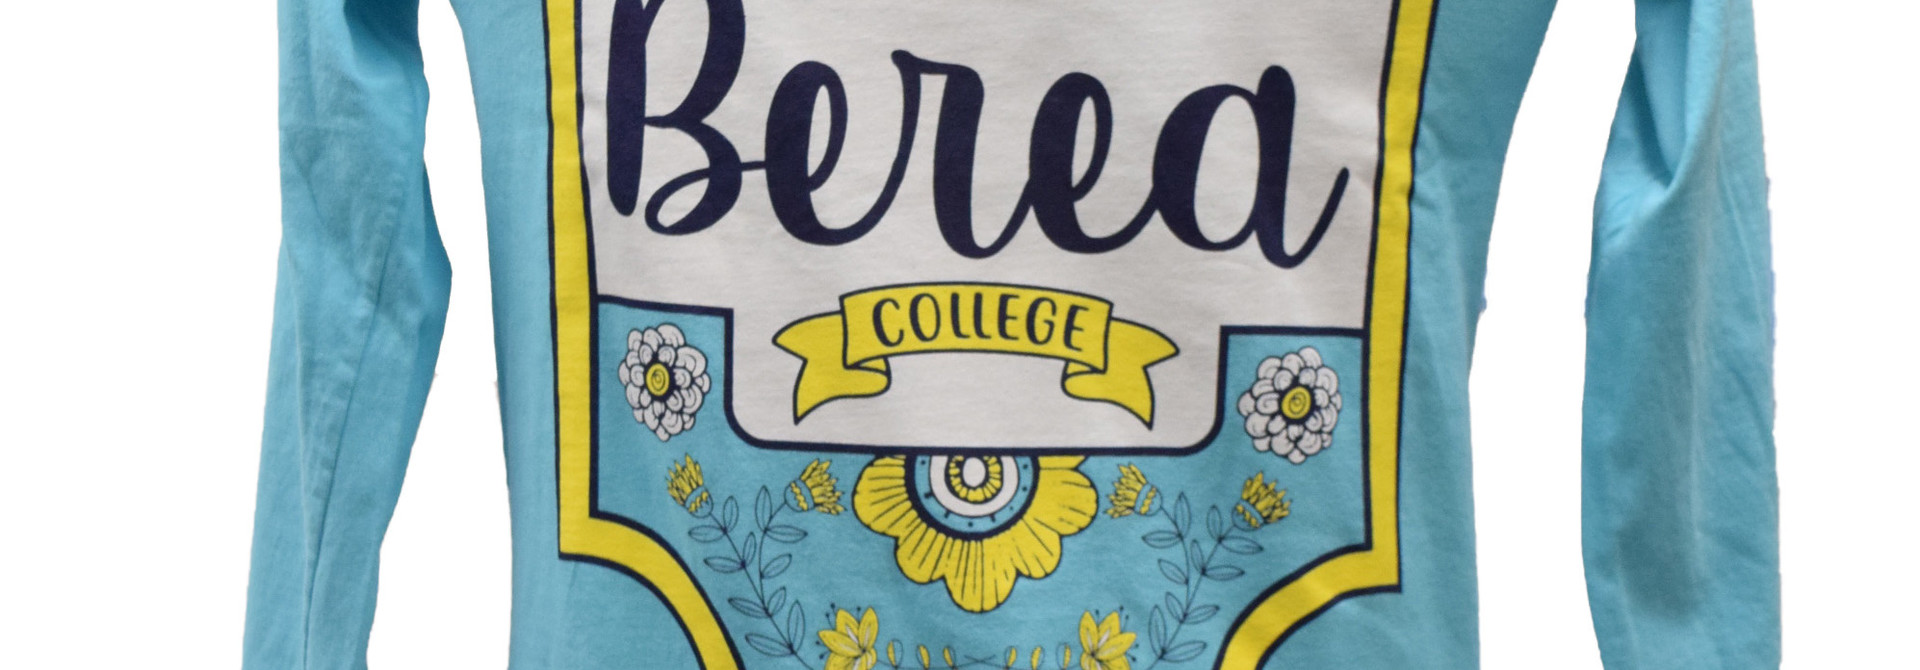 Berea College  Square and flowers T shirt